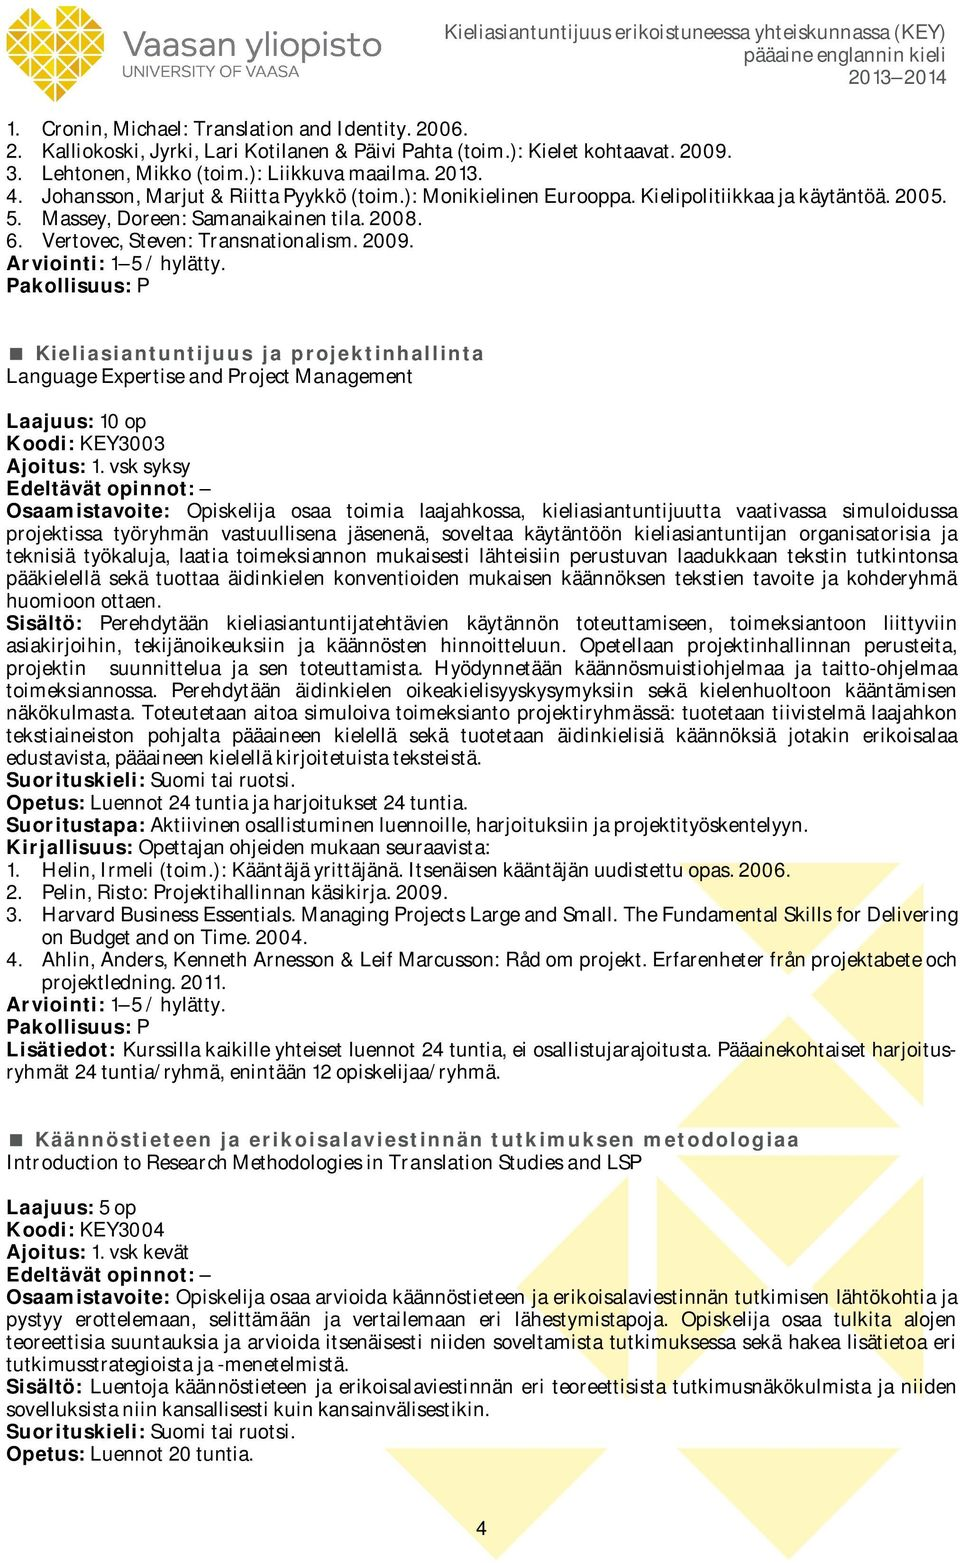 Kieliasiantuntijuus ja projektinhallinta Language Expertise and Project Management Laajuus: 10 op Koodi: KEY3003 Osaamistavoite: Opiskelija osaa toimia laajahkossa, kieliasiantuntijuutta vaativassa